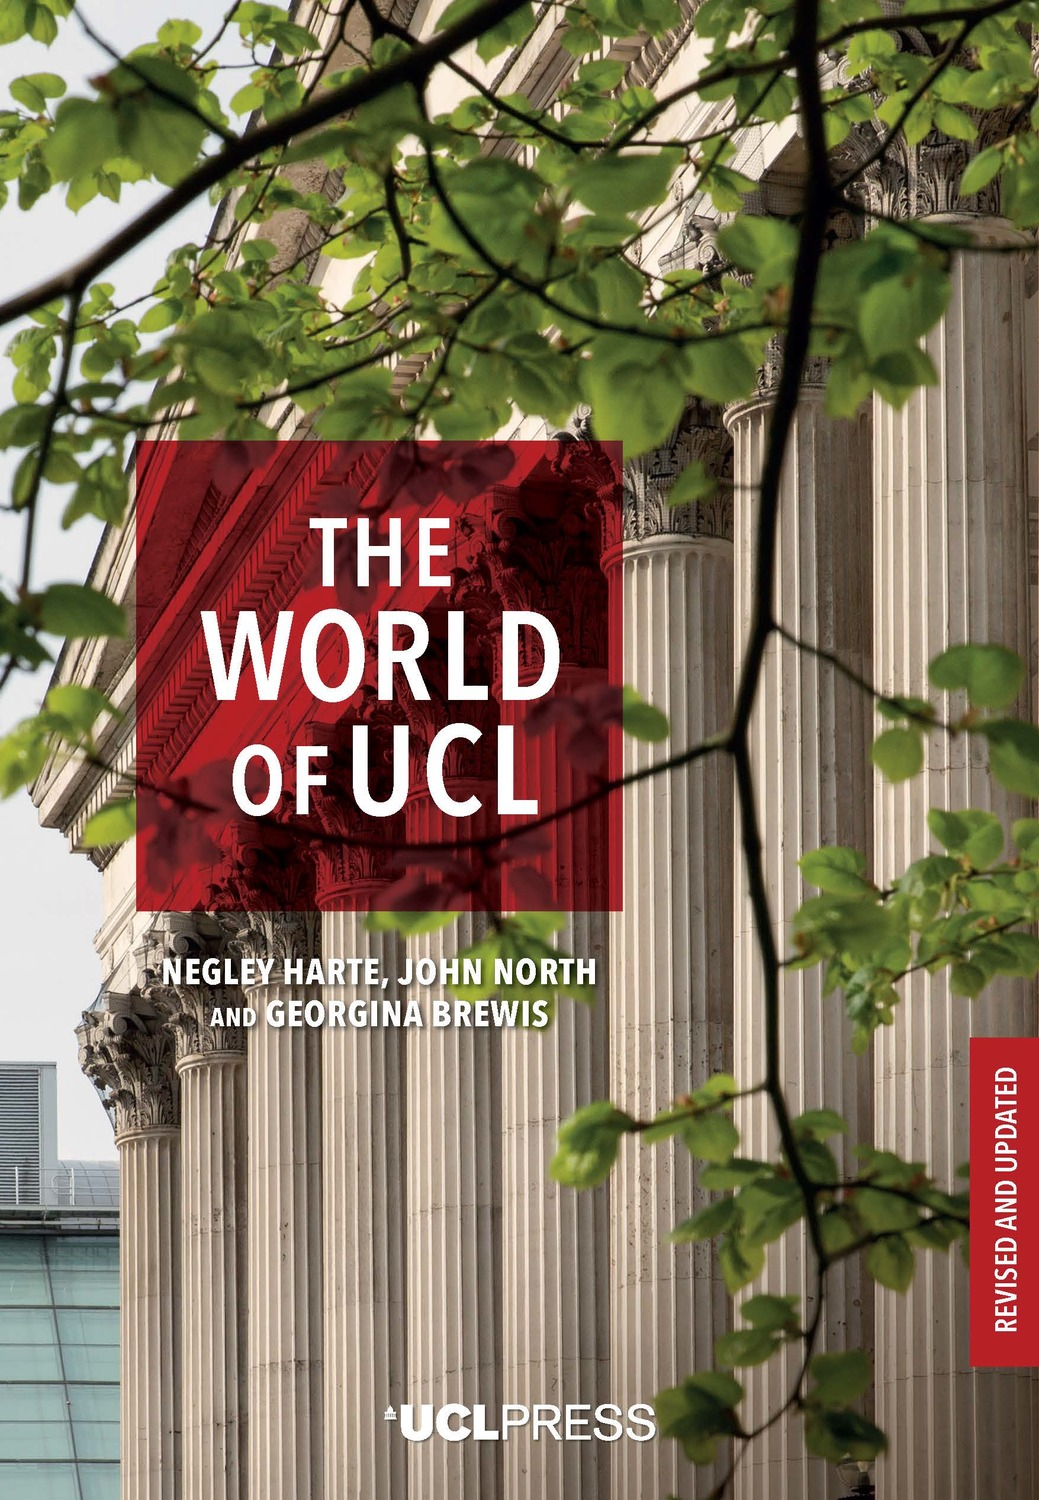 The World of UCL